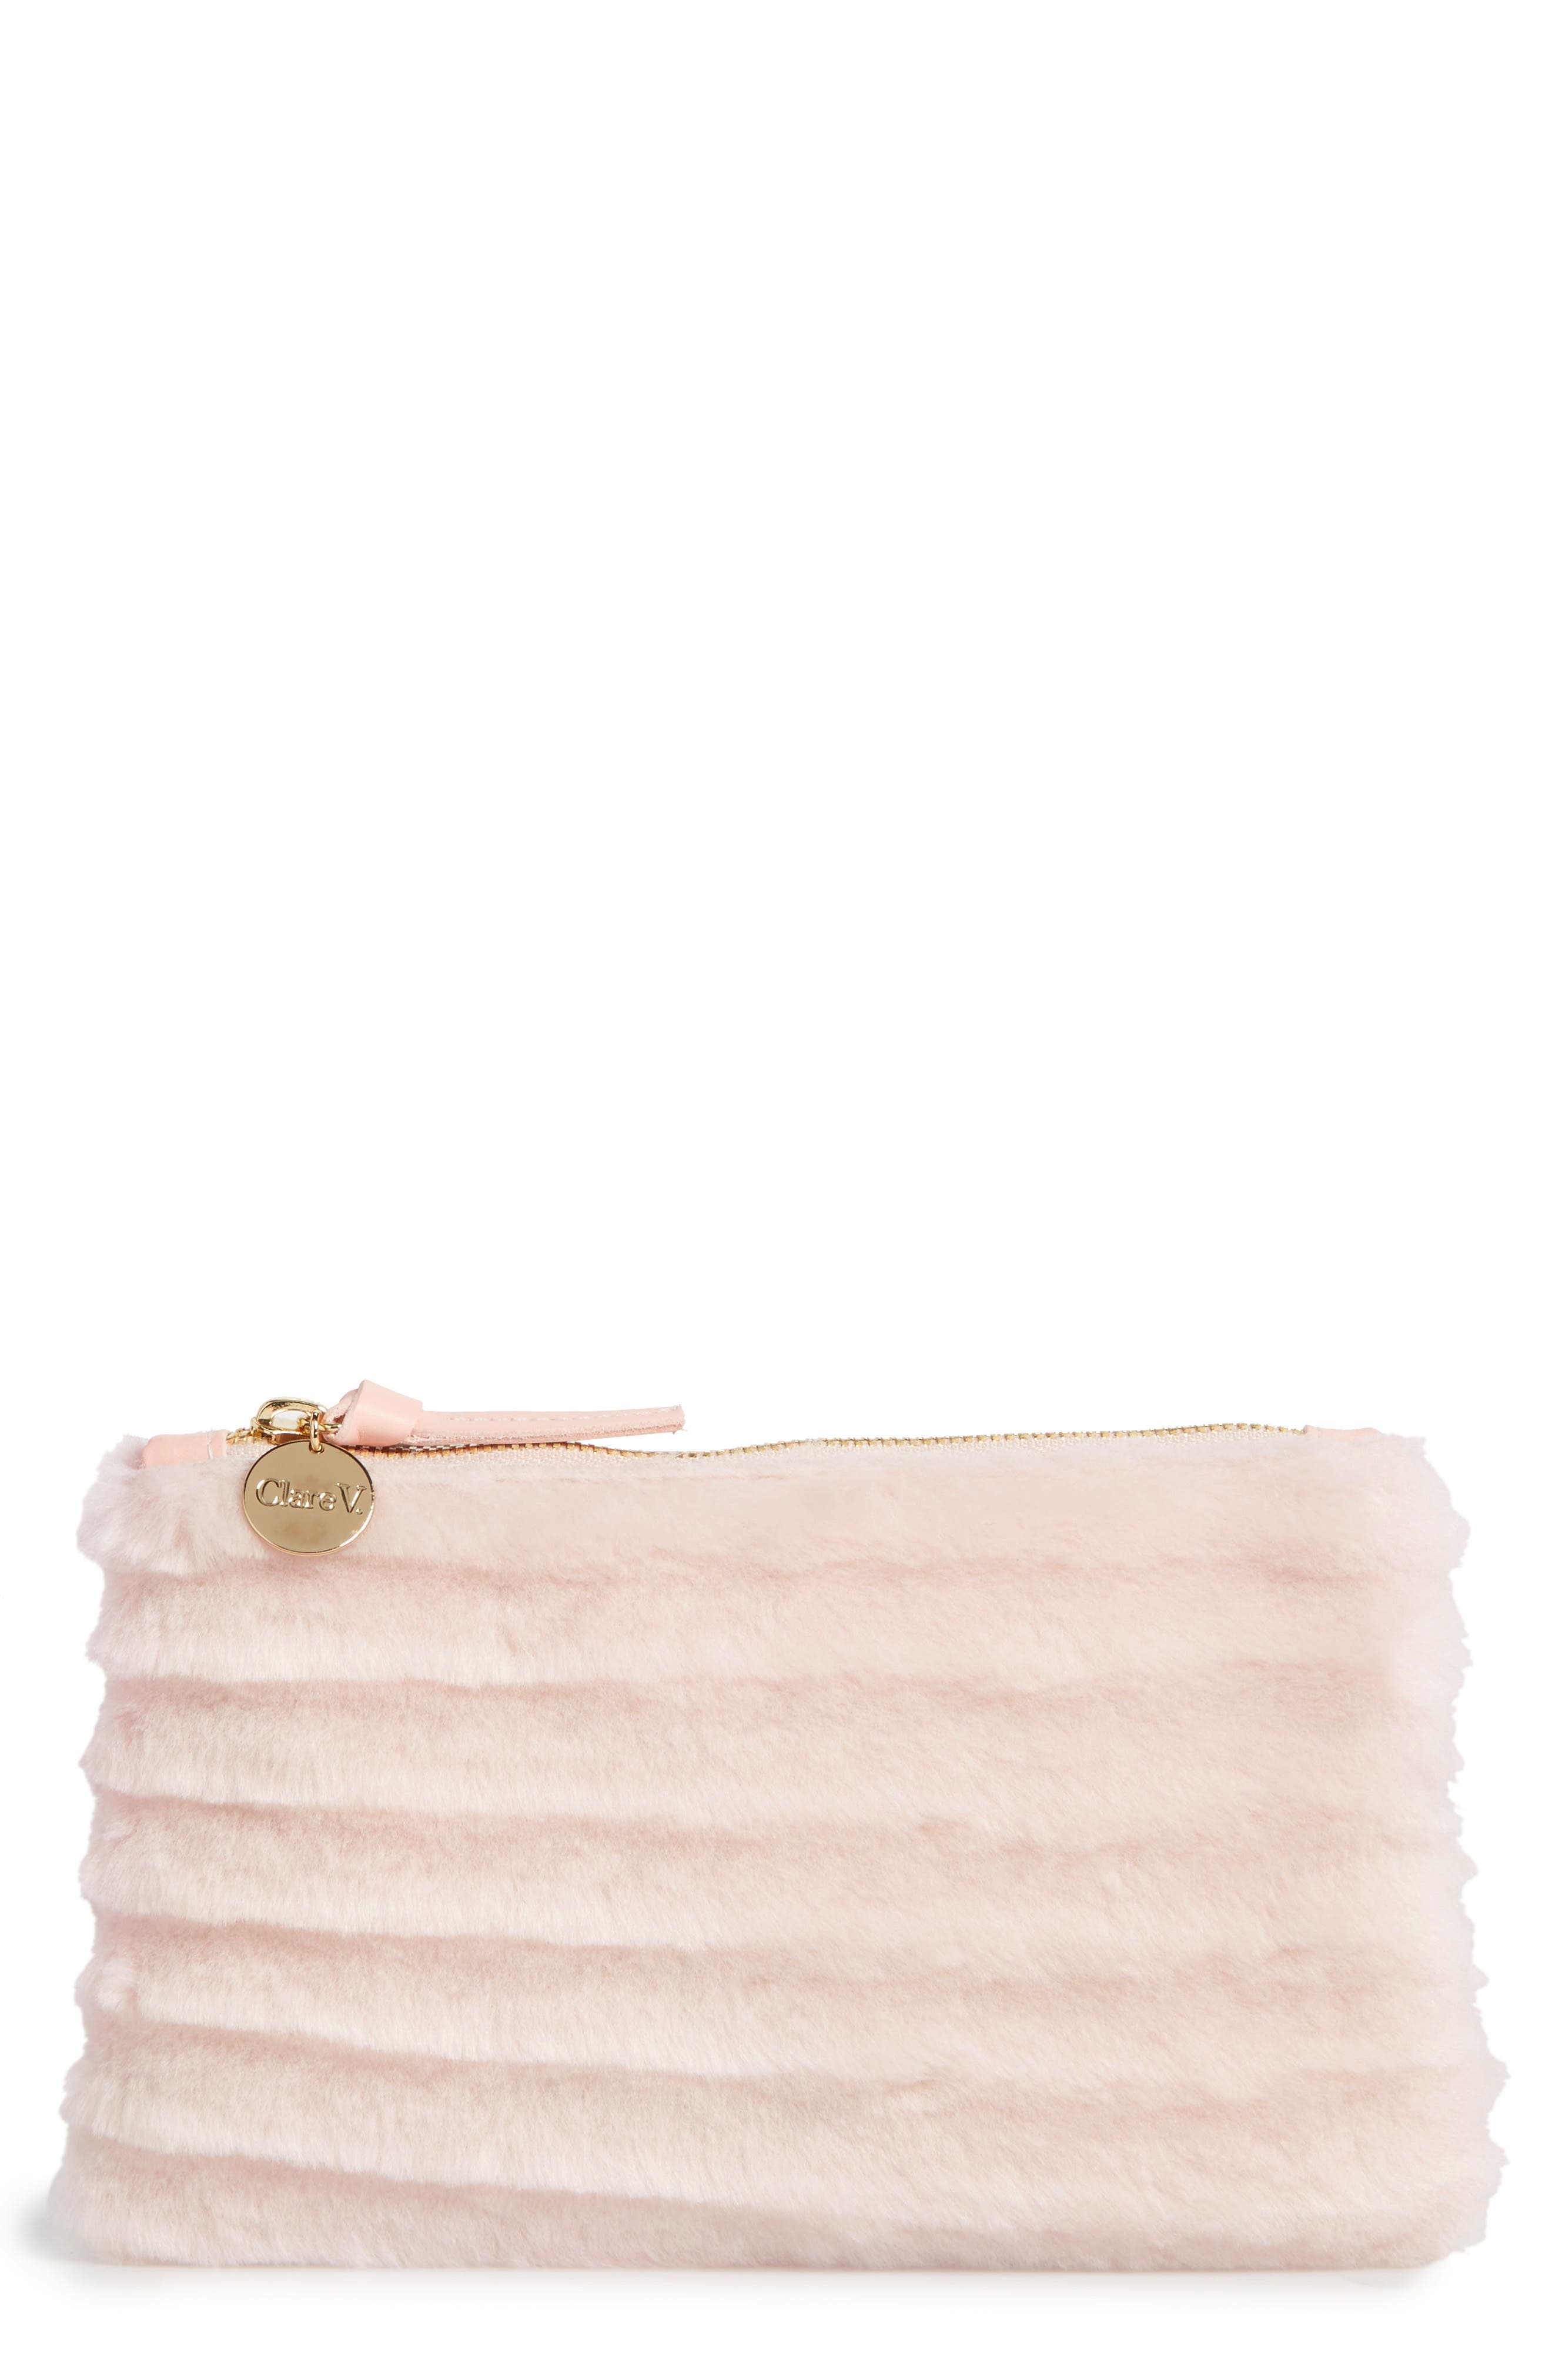 Genuine Shearling Pouch,                             Main thumbnail 1, color,